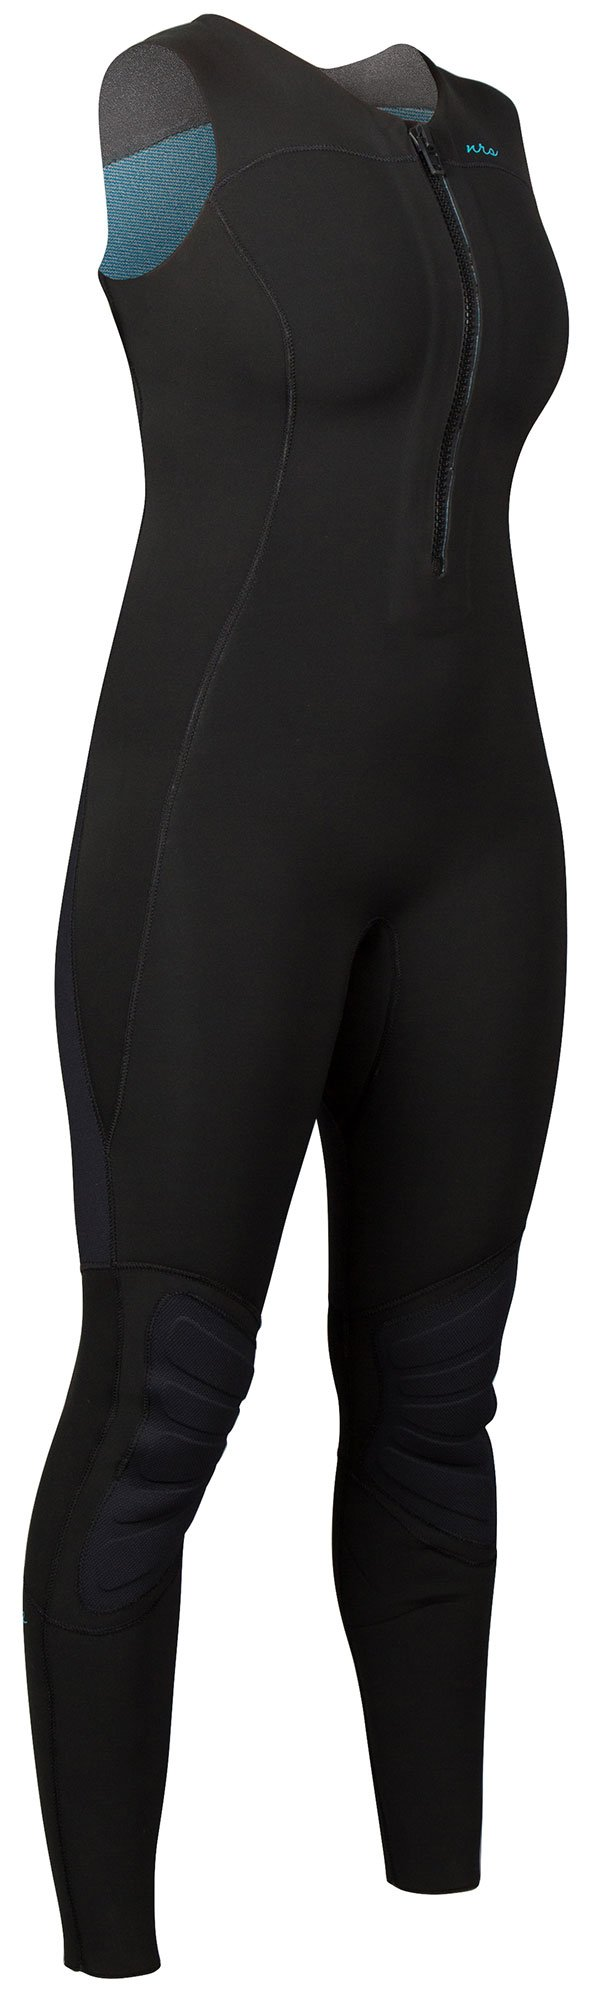 NRS Women's 3.0 Farmer Jane Wetsuit Black XS